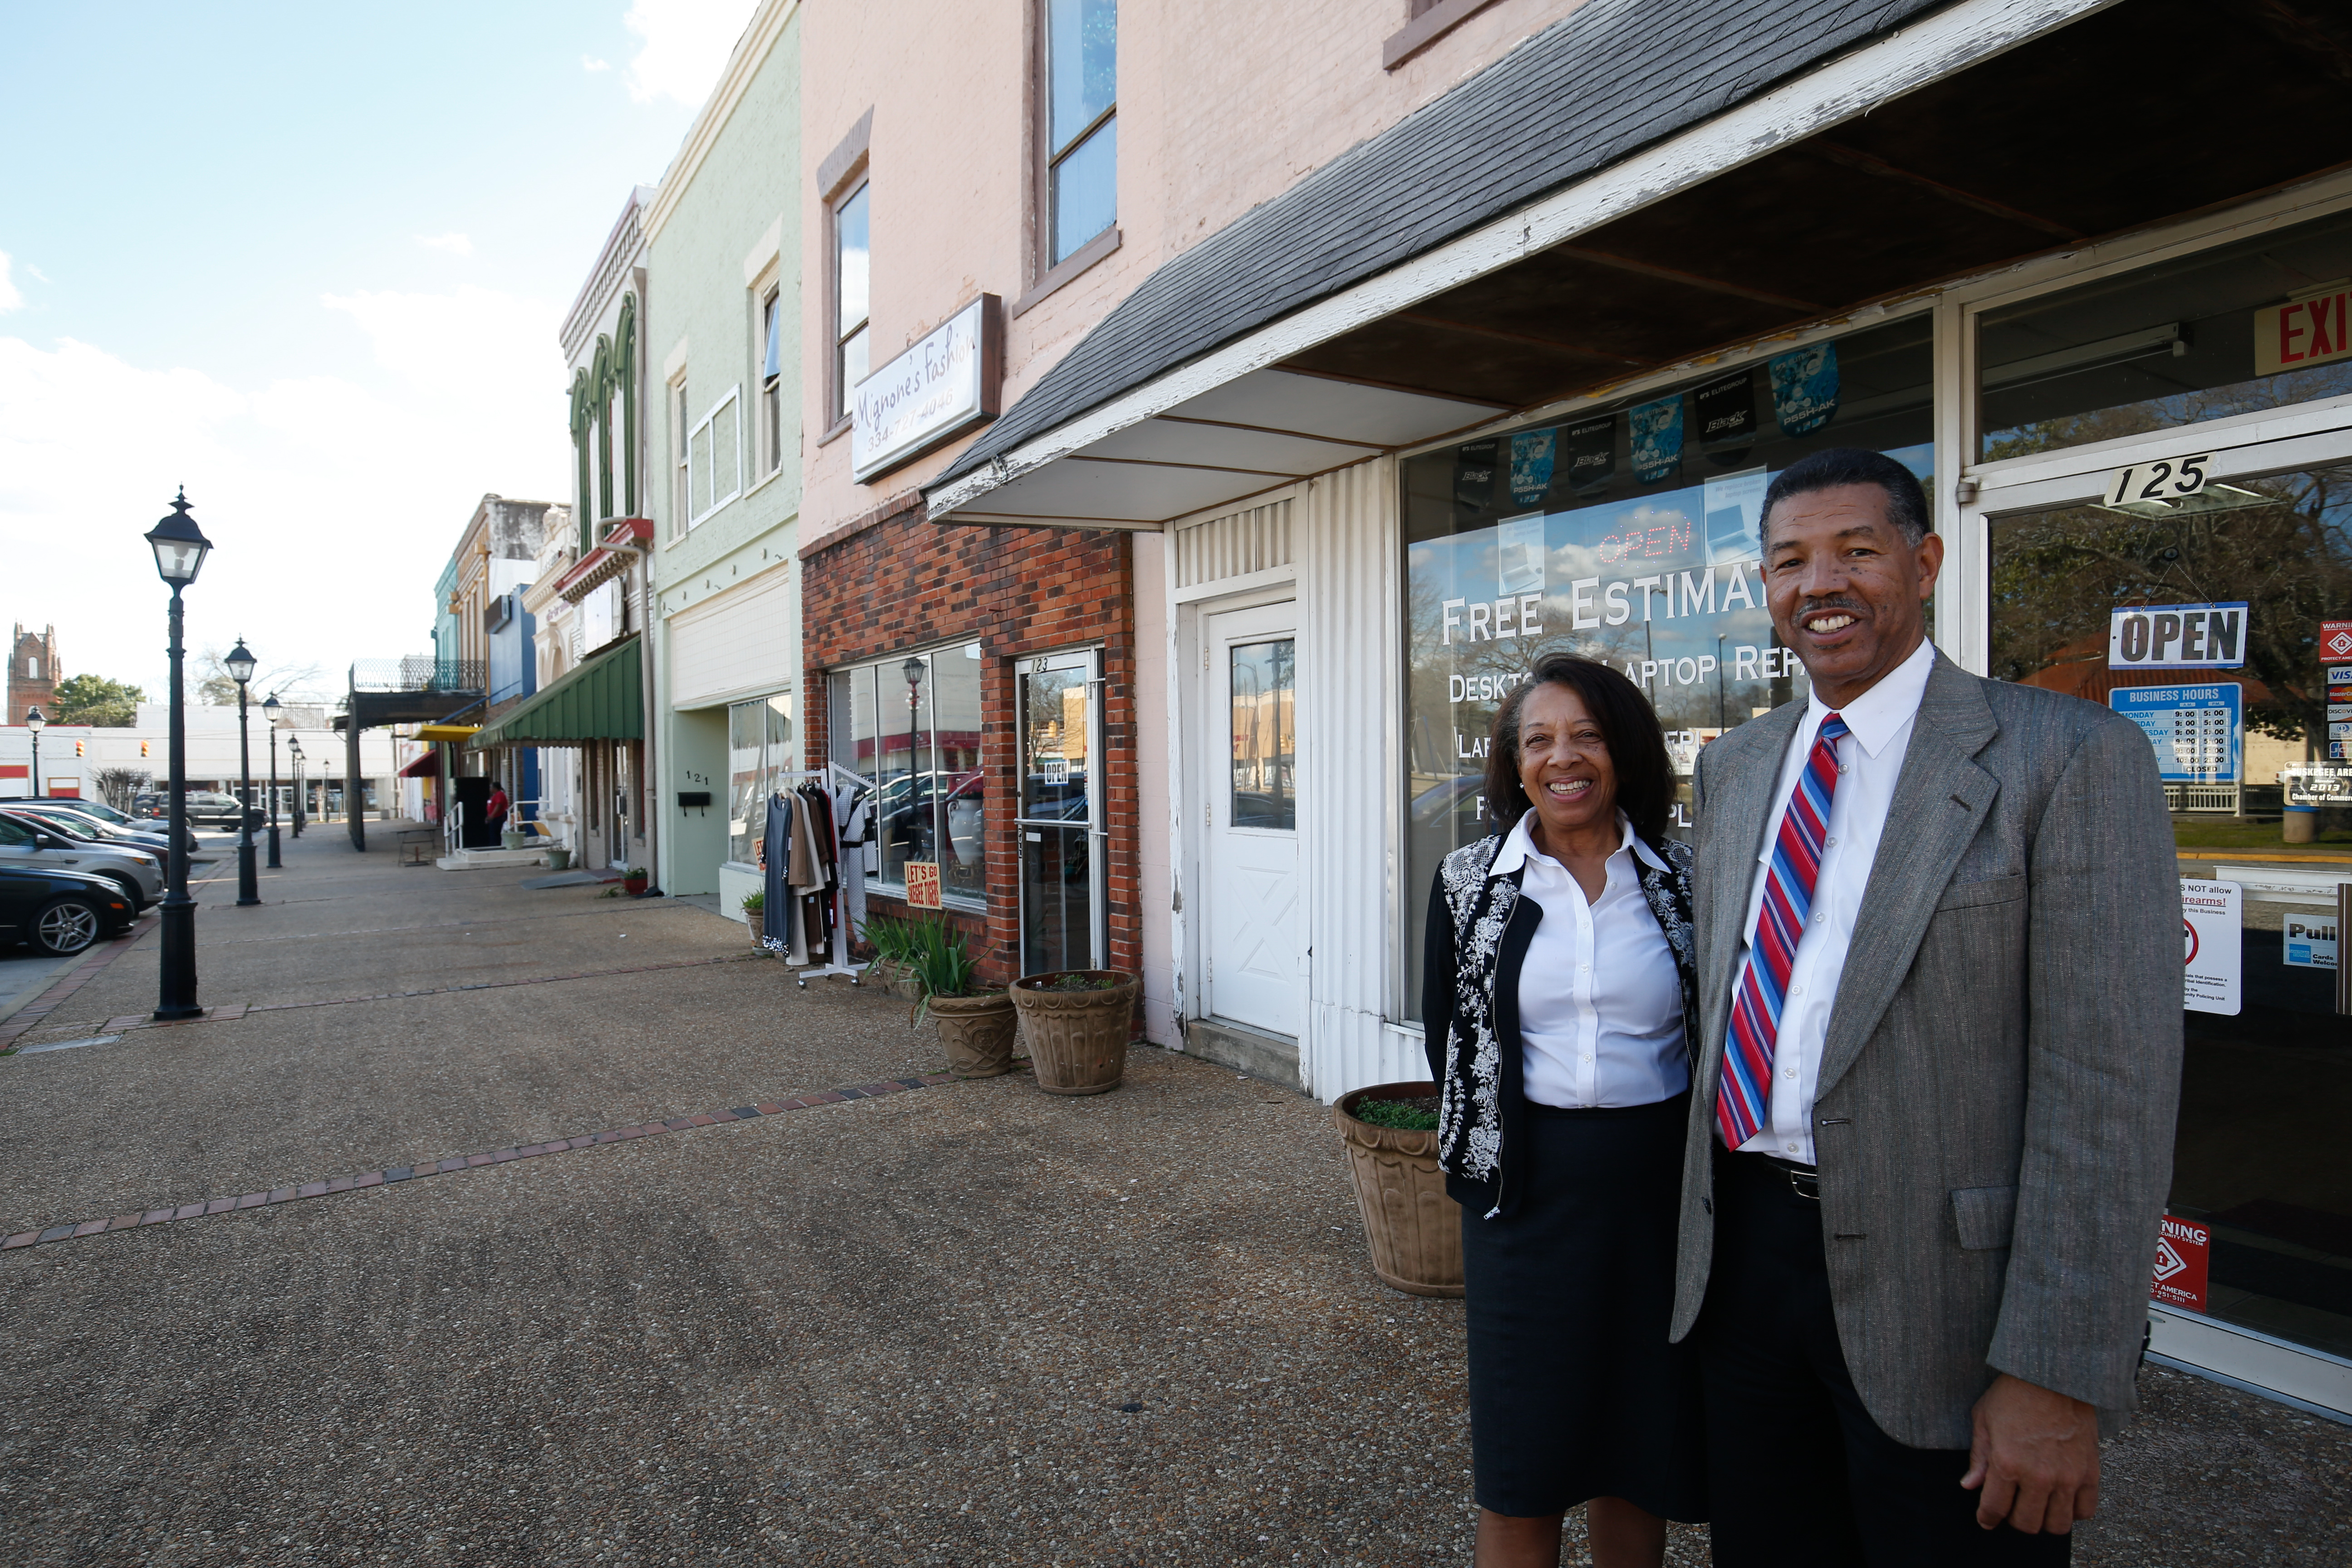 """Town Square is one of our treasures, and we want to make it the center of everything in Tuskegee,"" Mayor Tony Haygood said. (Provided photo)"